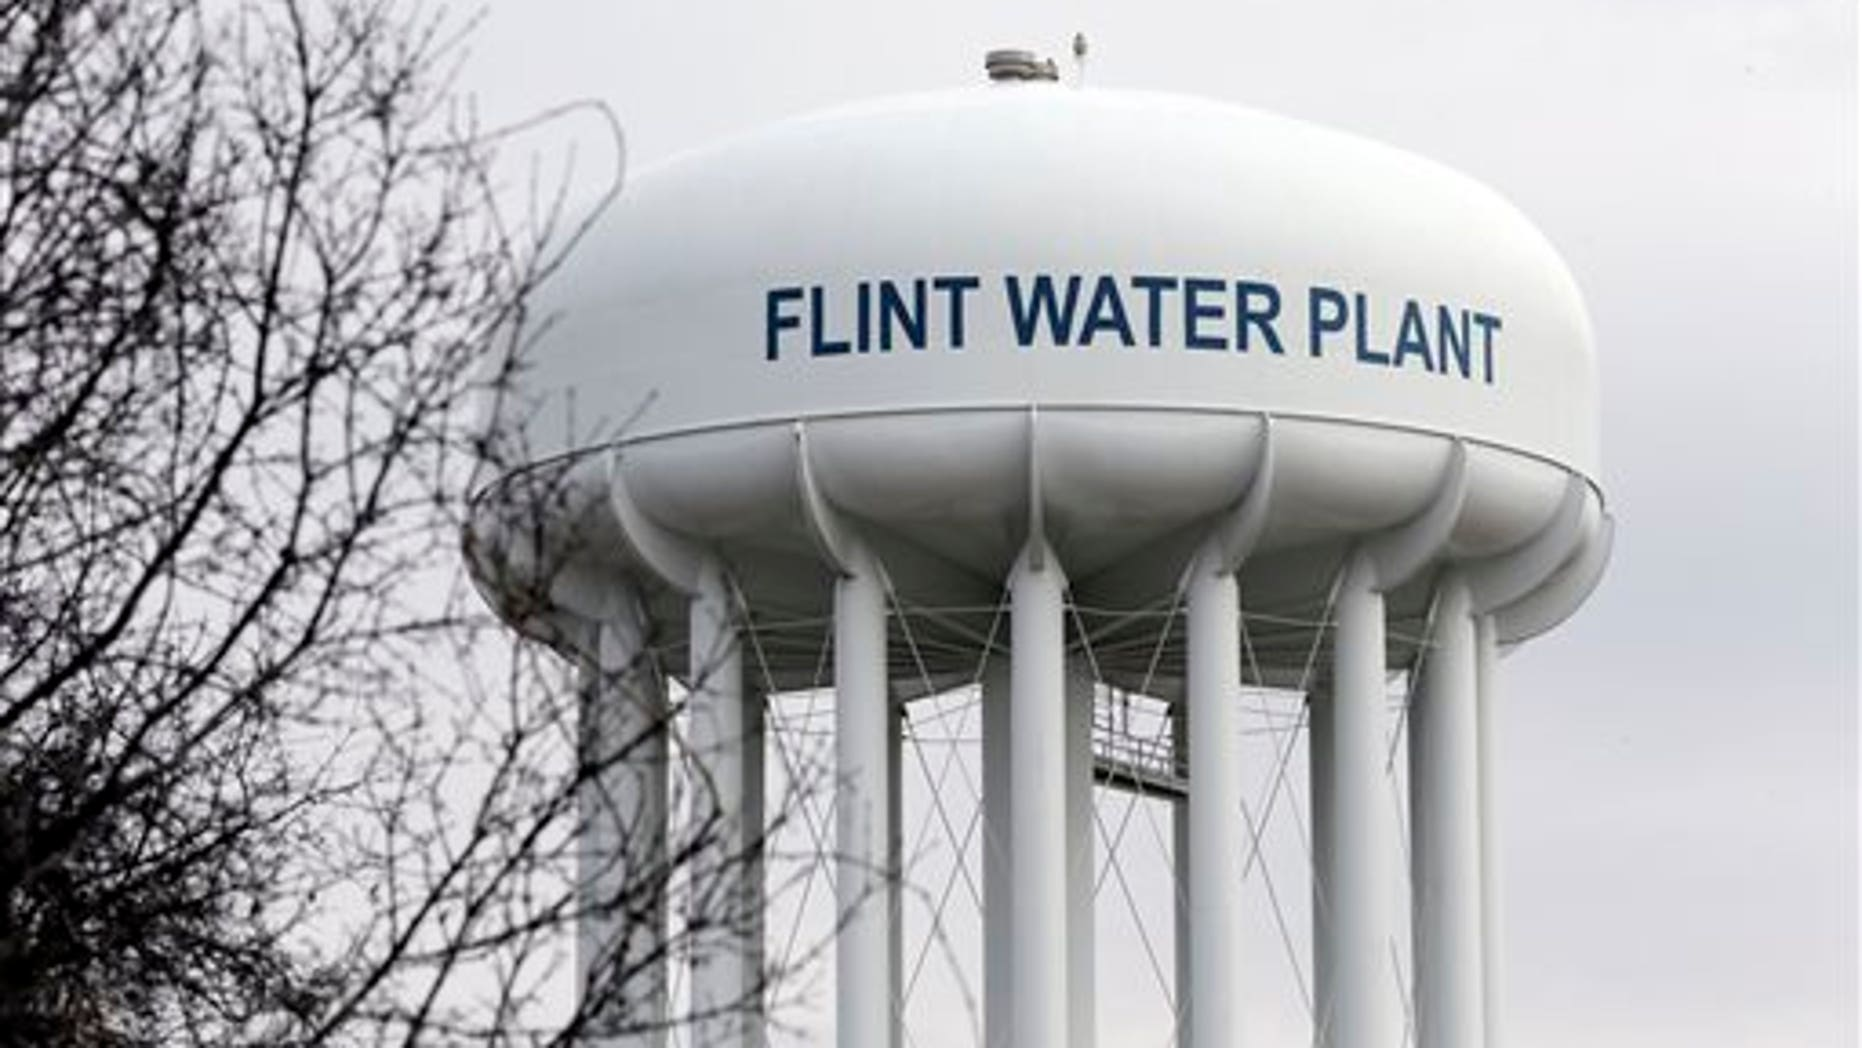 This Feb. 5, 2016 file photo shows the Flint Water Plant tower in Flint, Mich. Michigan.